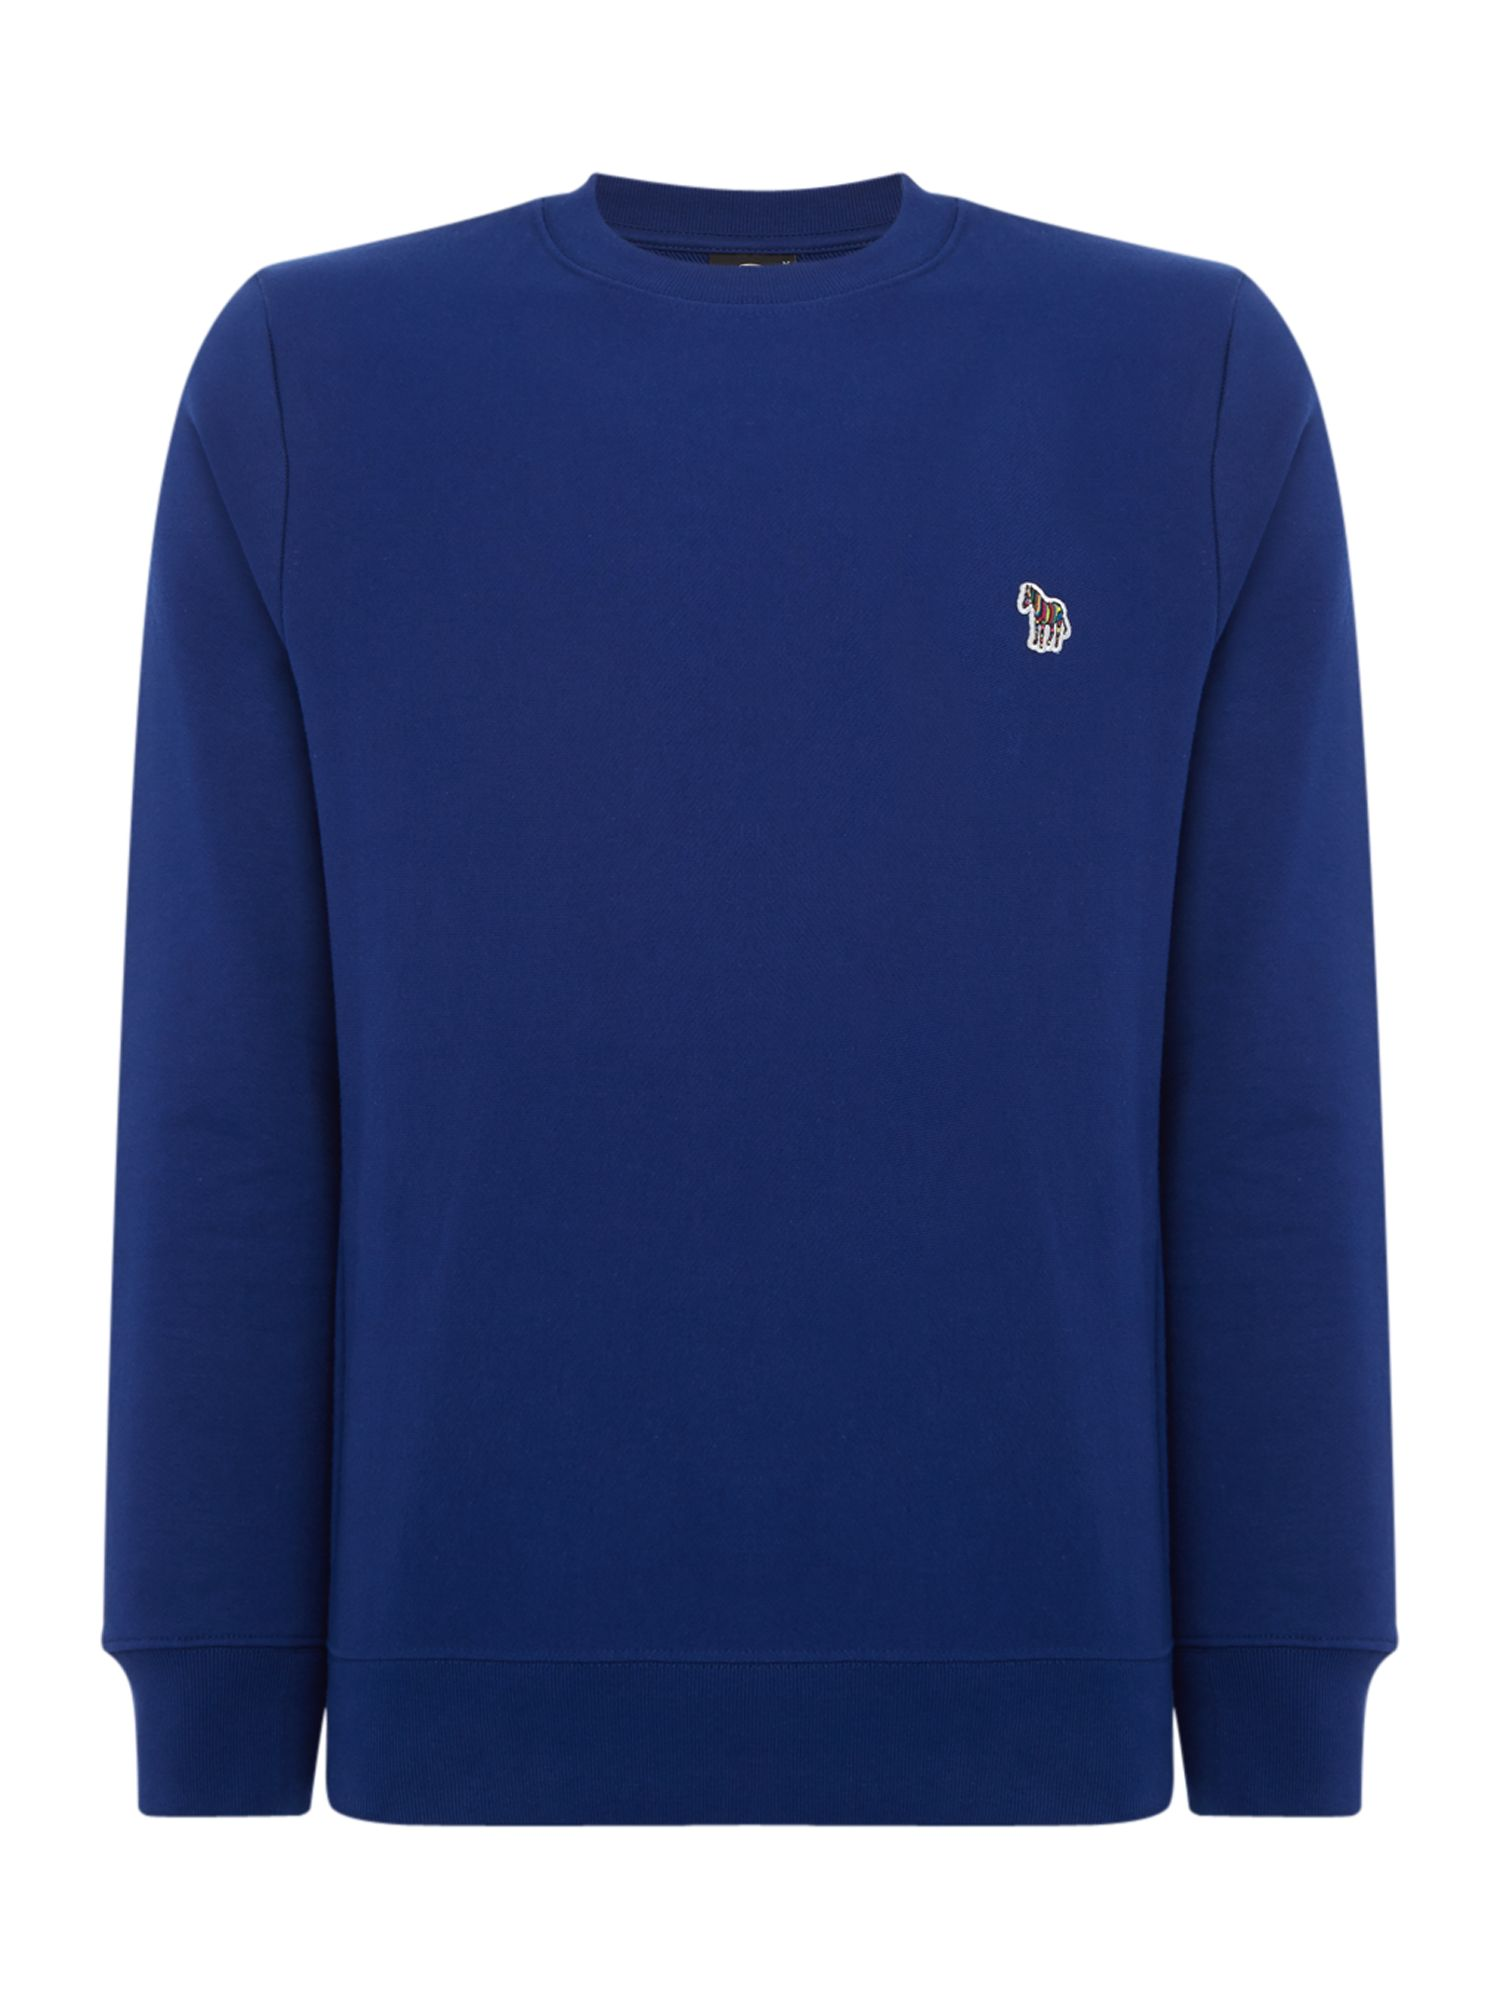 Men's PS By Paul Smith Zebra Logo Sweatshirt, Cobalt